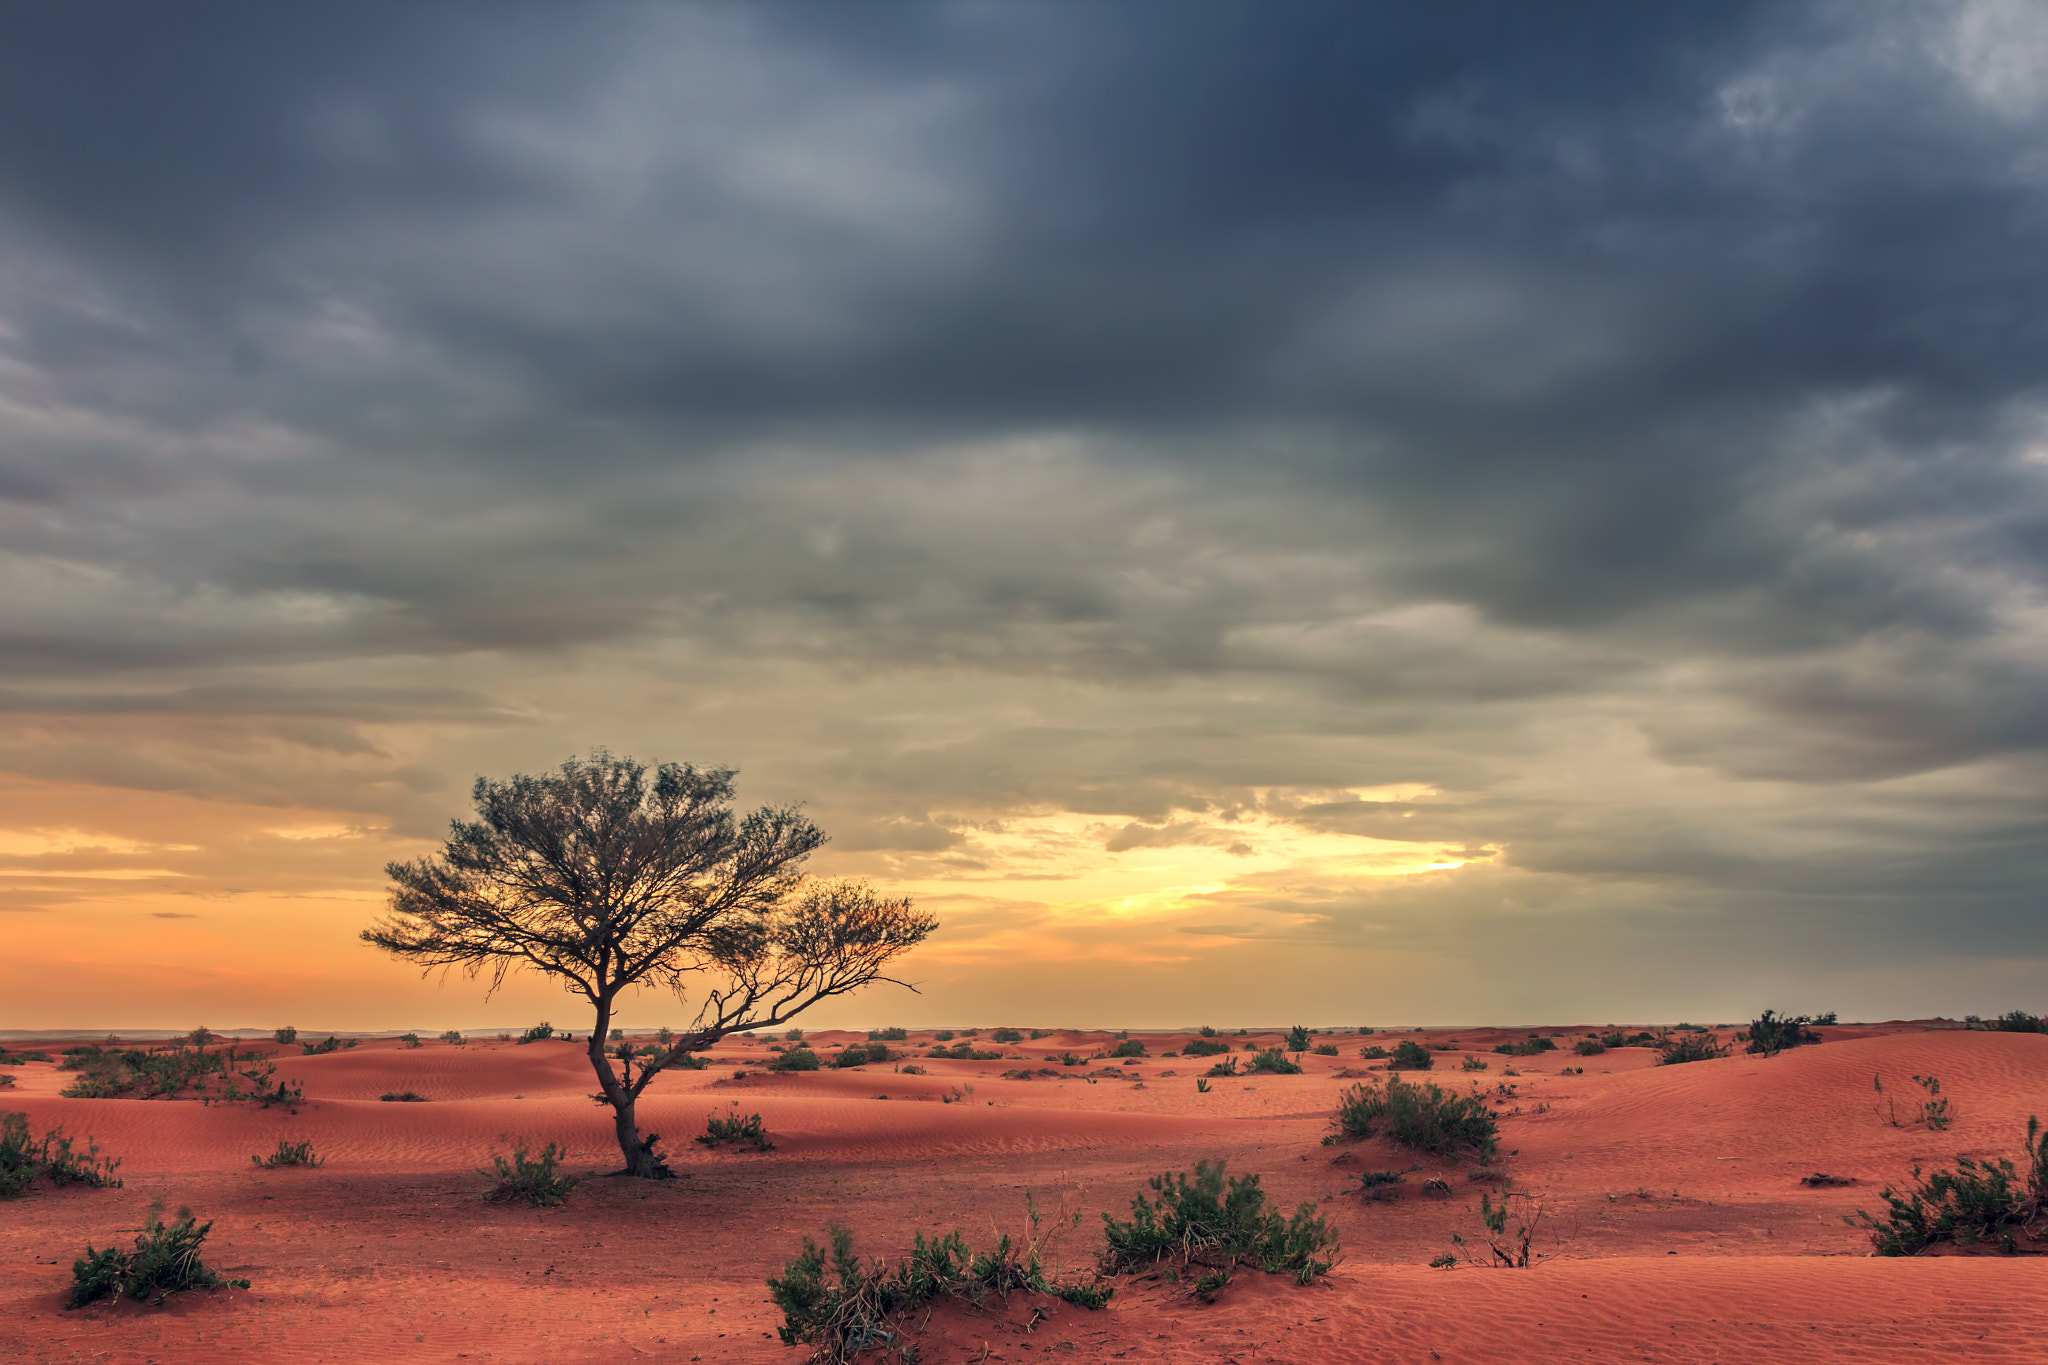 Photograph Great Day by Ismaeil Alsalman on 500px